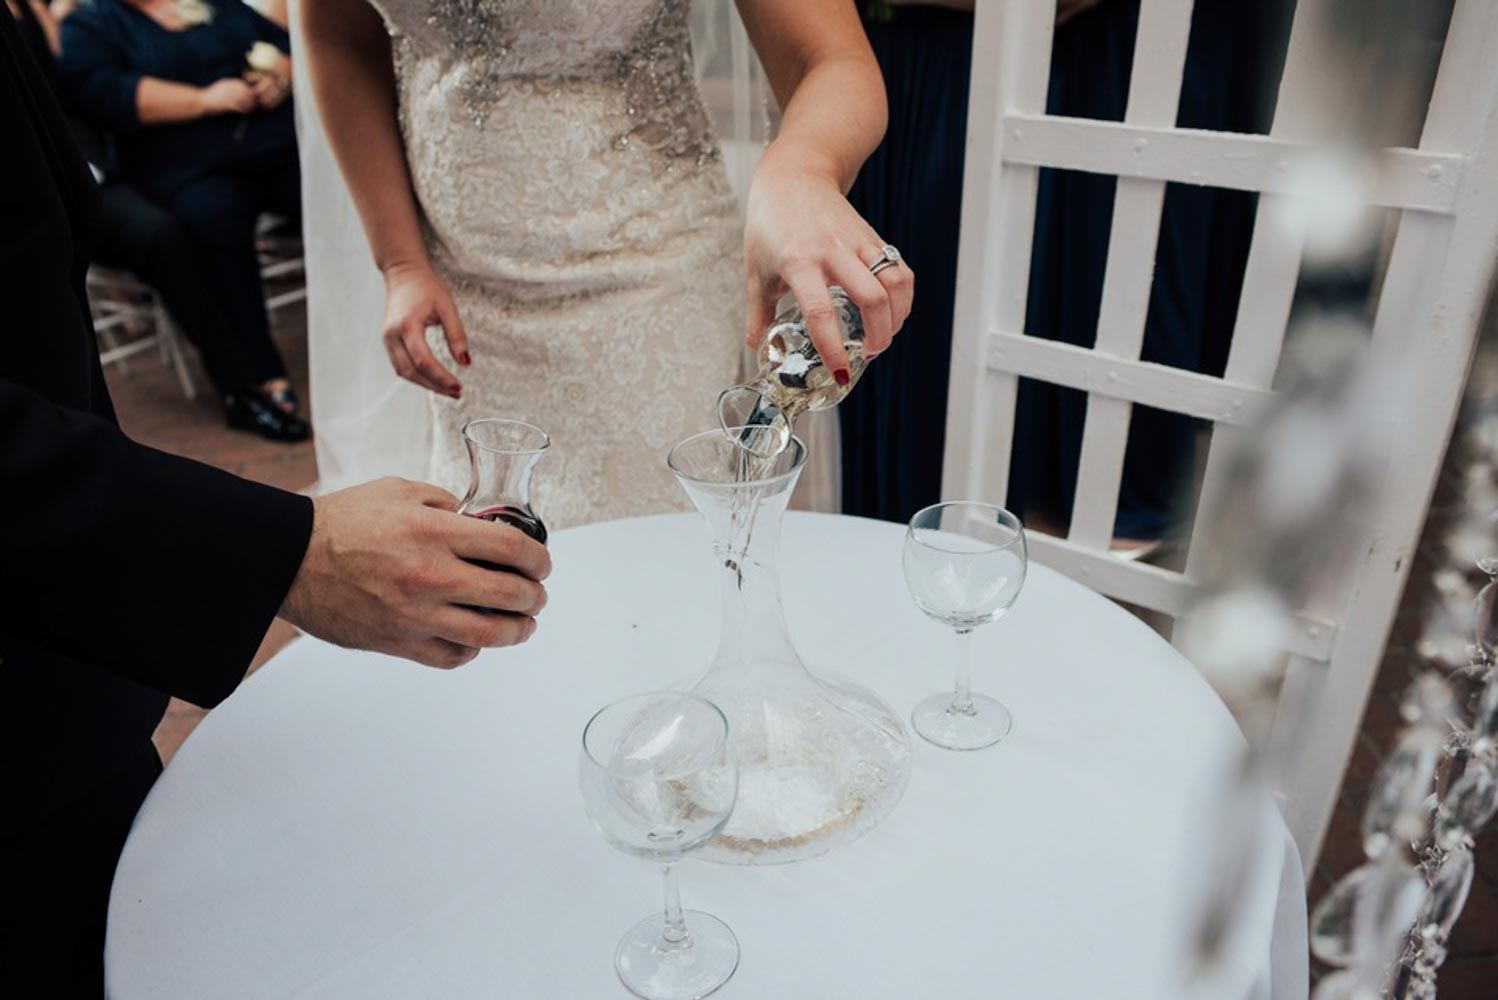 Photo of the hands of bride and groom pouring wine into larger Marriage Carafe